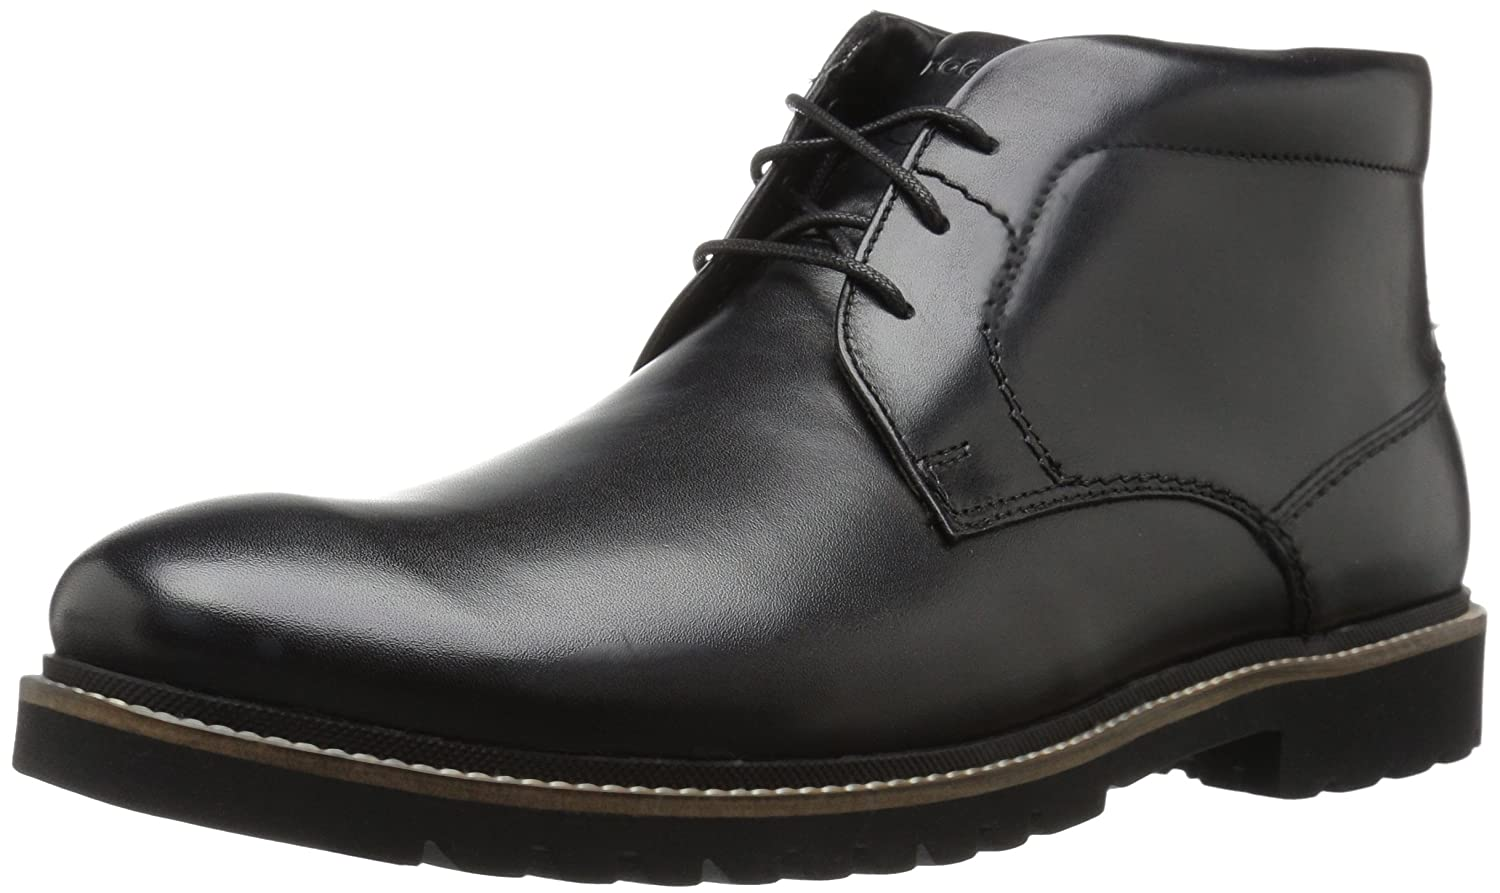 Rockport Men's Marshall Chukka Chukka Boot